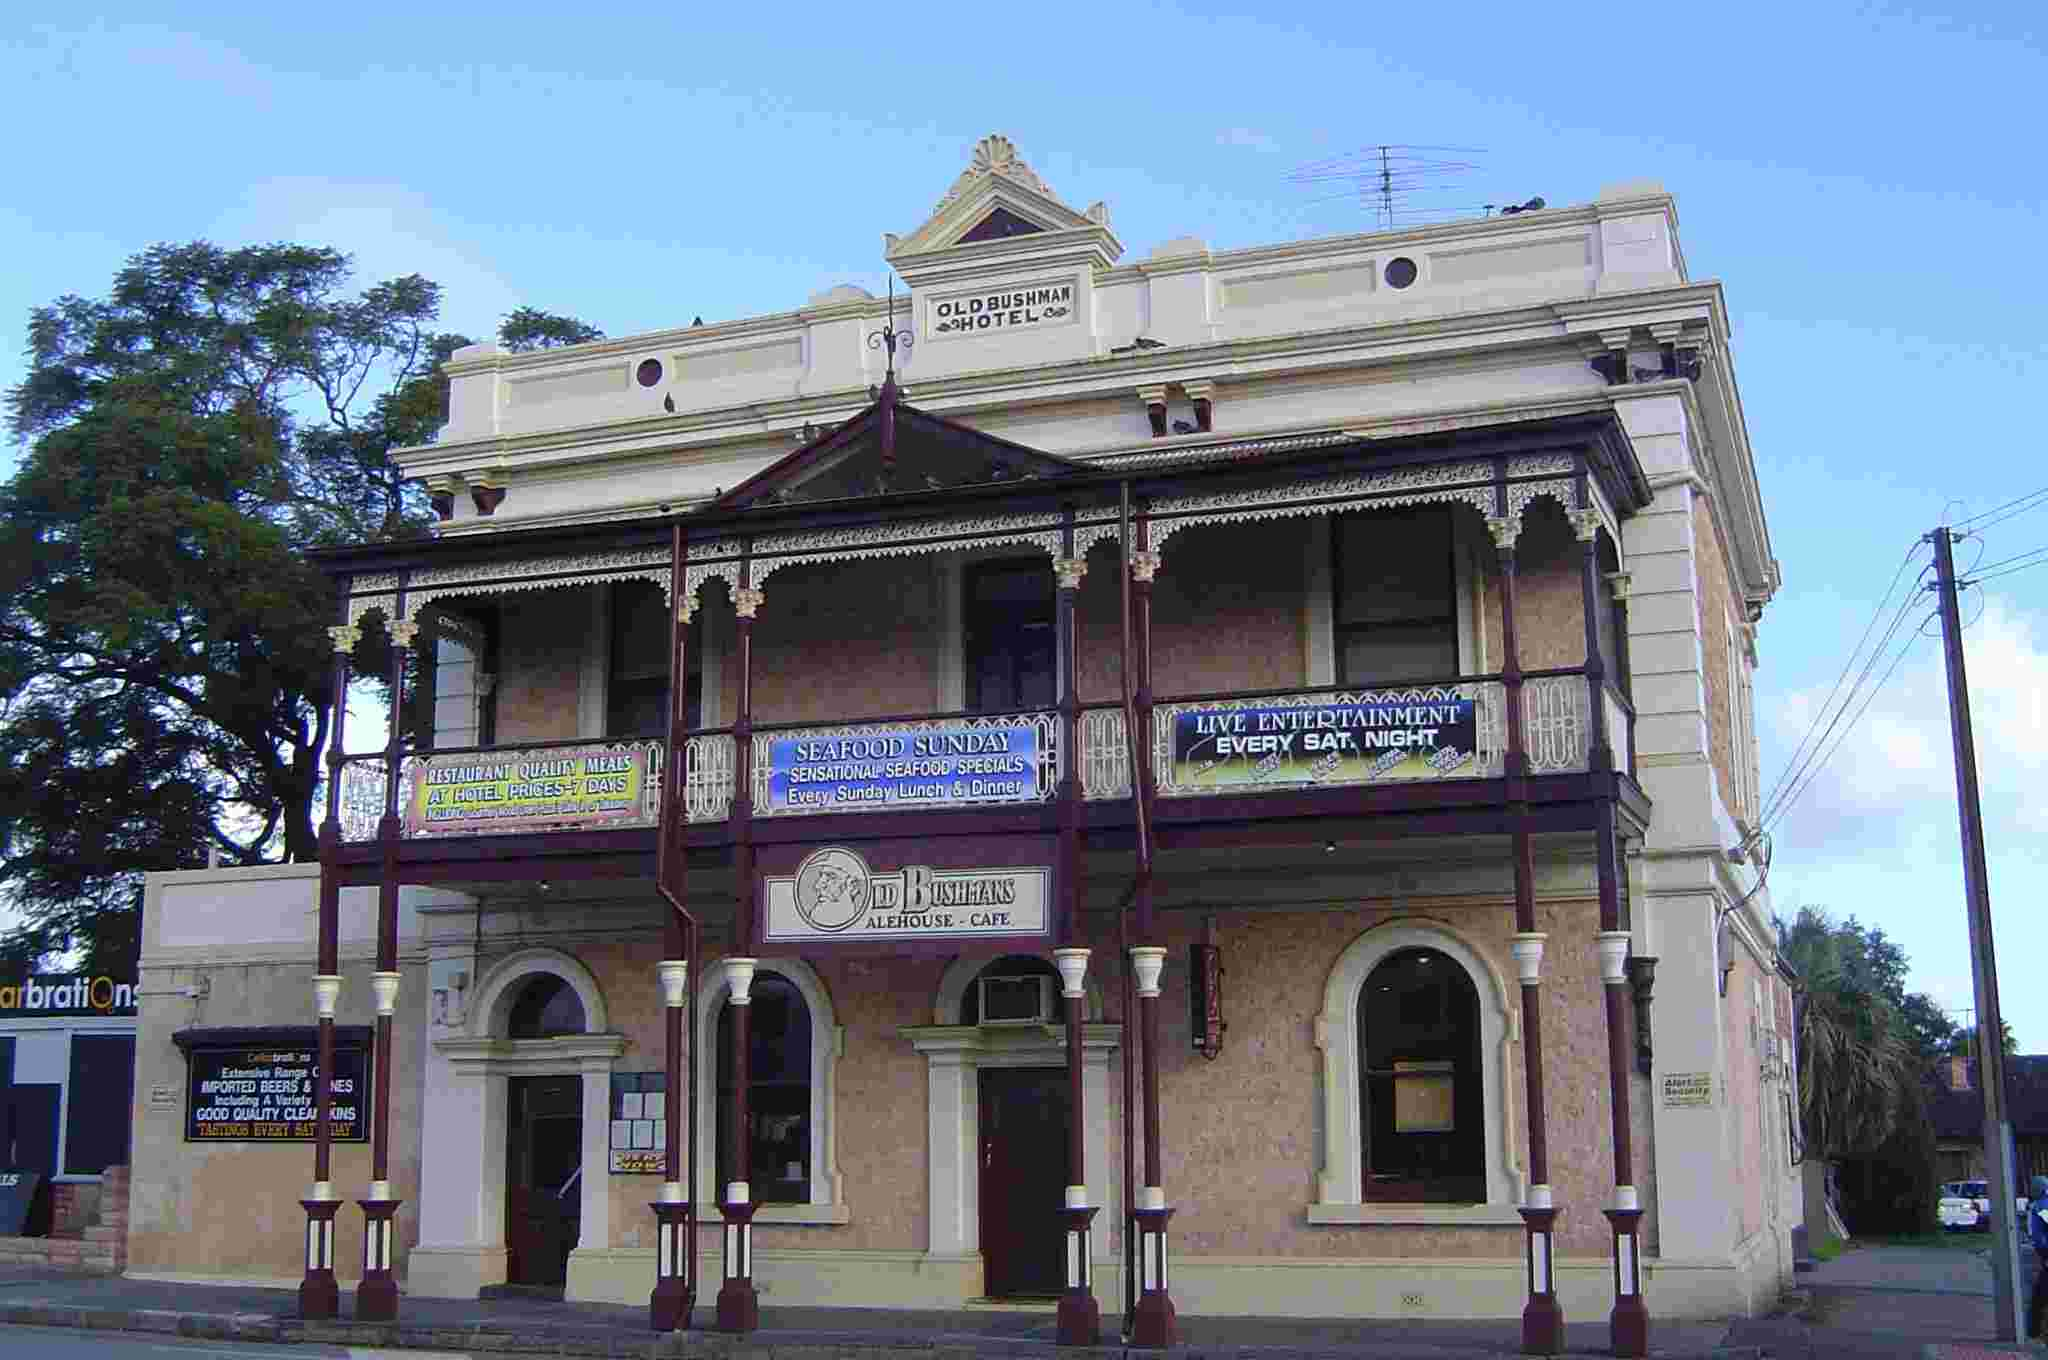 Gawler Australia  city pictures gallery : Gawler Adelaide Region, South Australia.